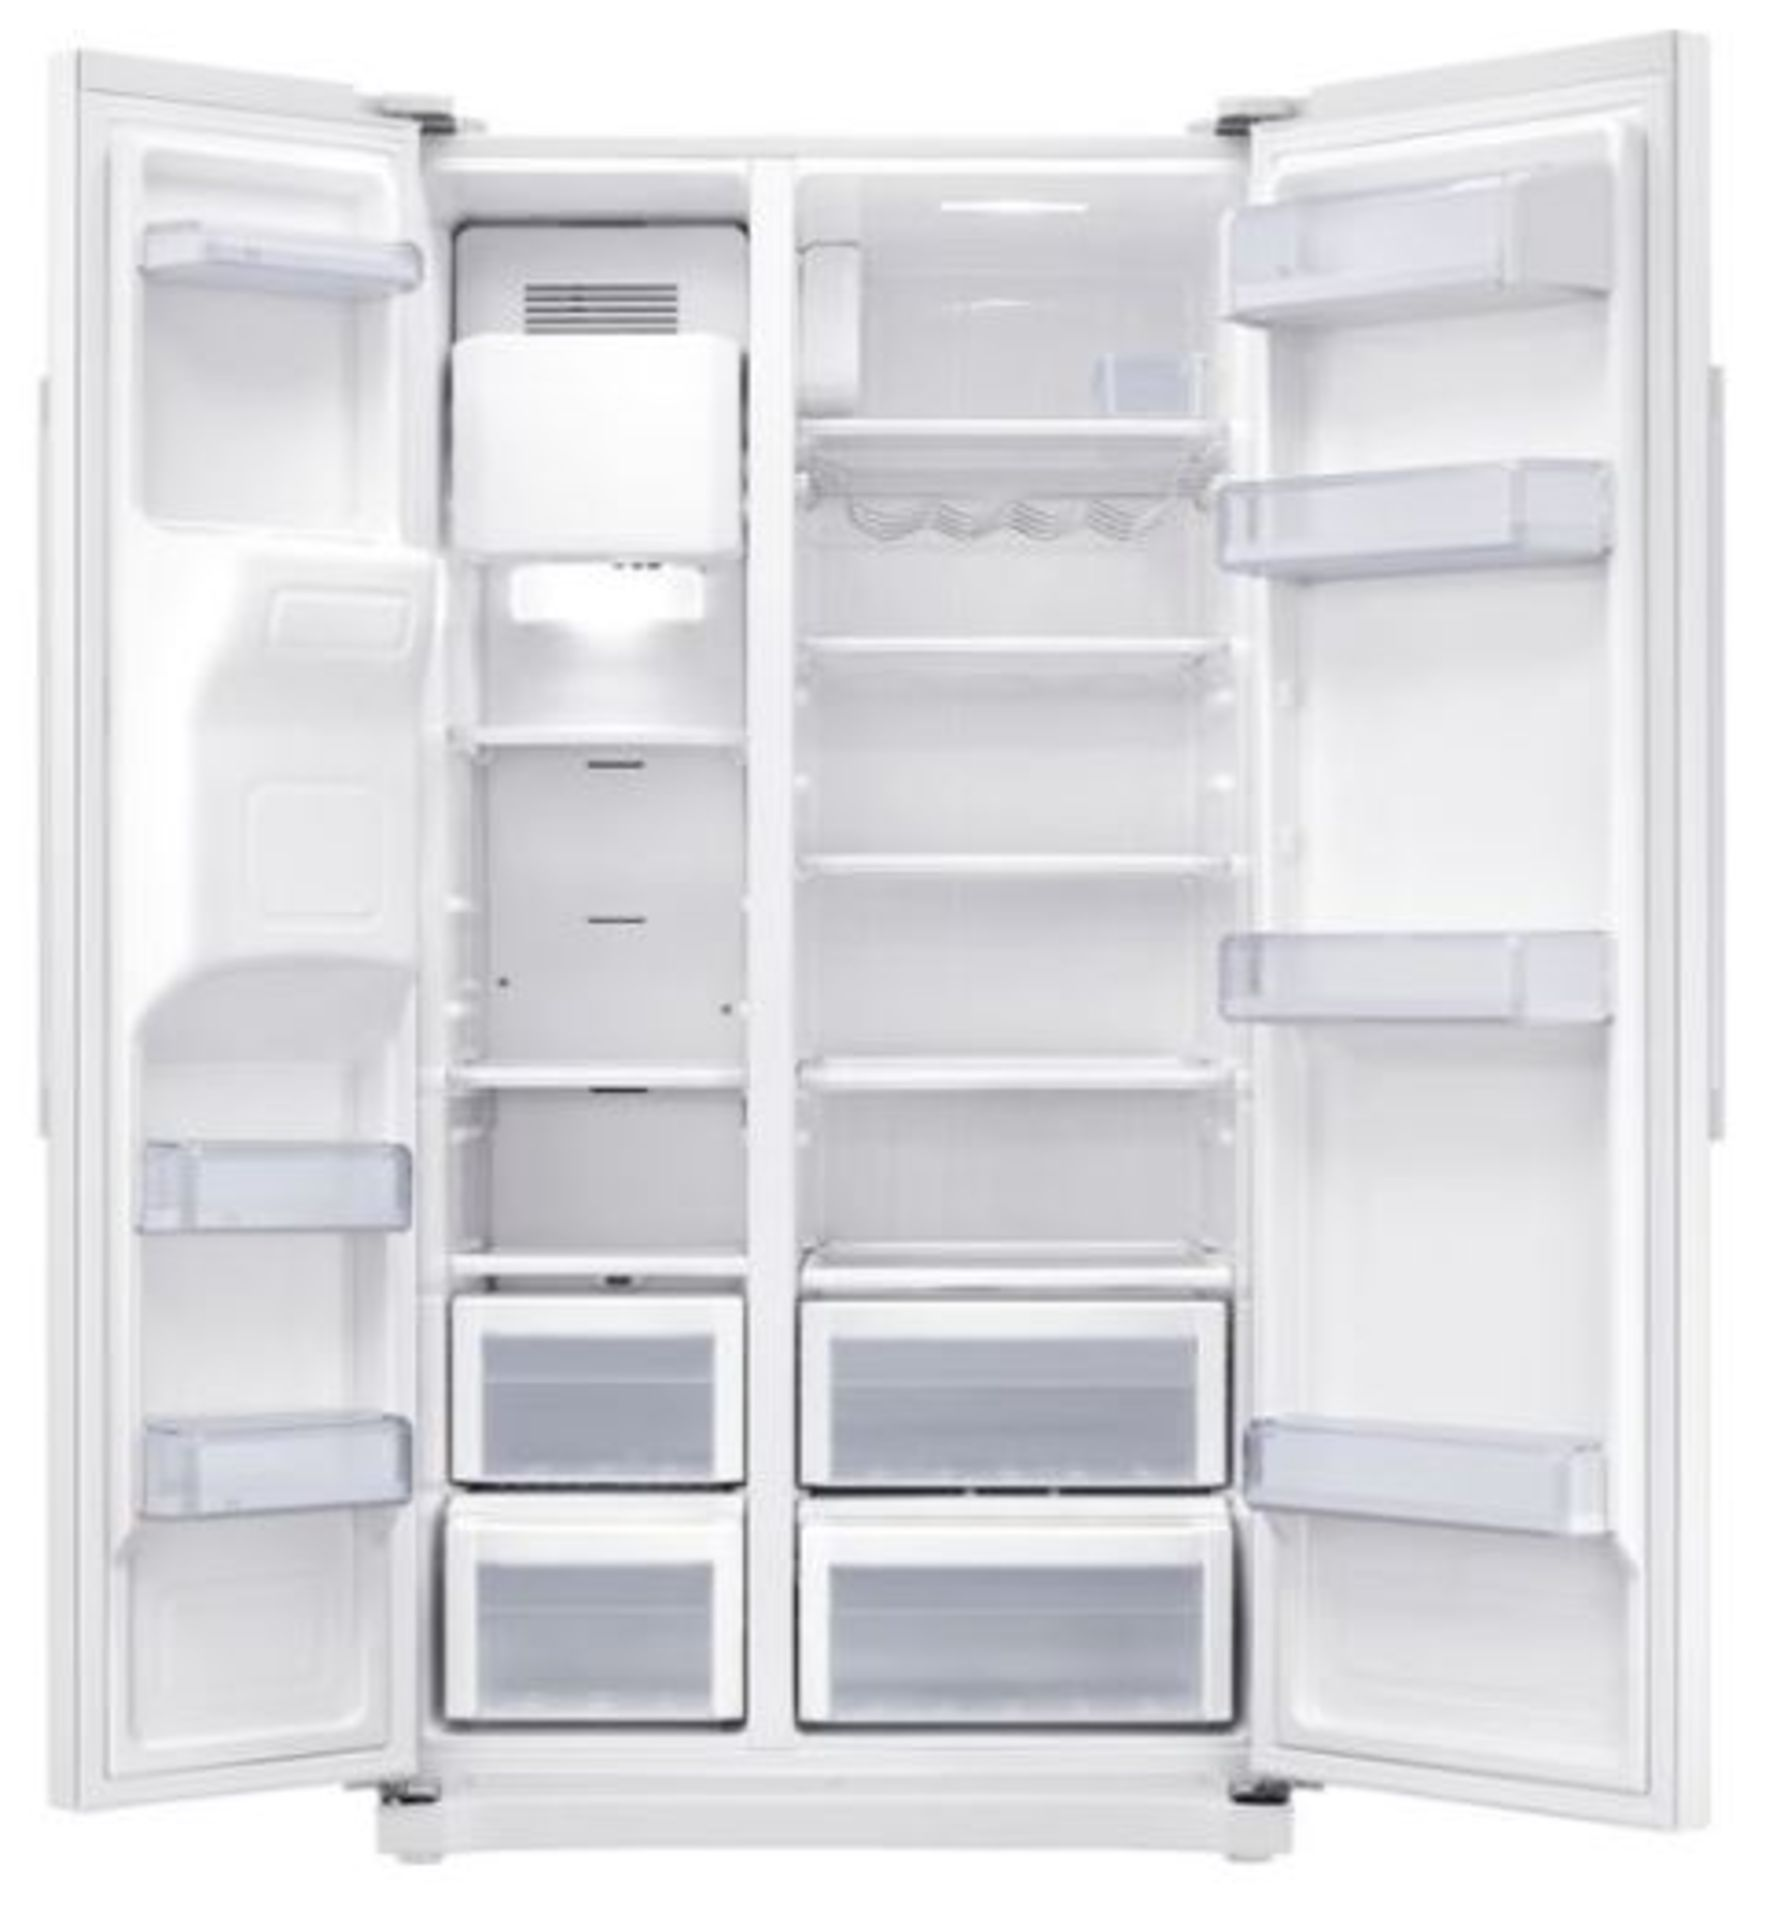 Pallet of 1 Samsung Water & Ice Fridge freezer. Latest selling price £999.99* - Image 3 of 8